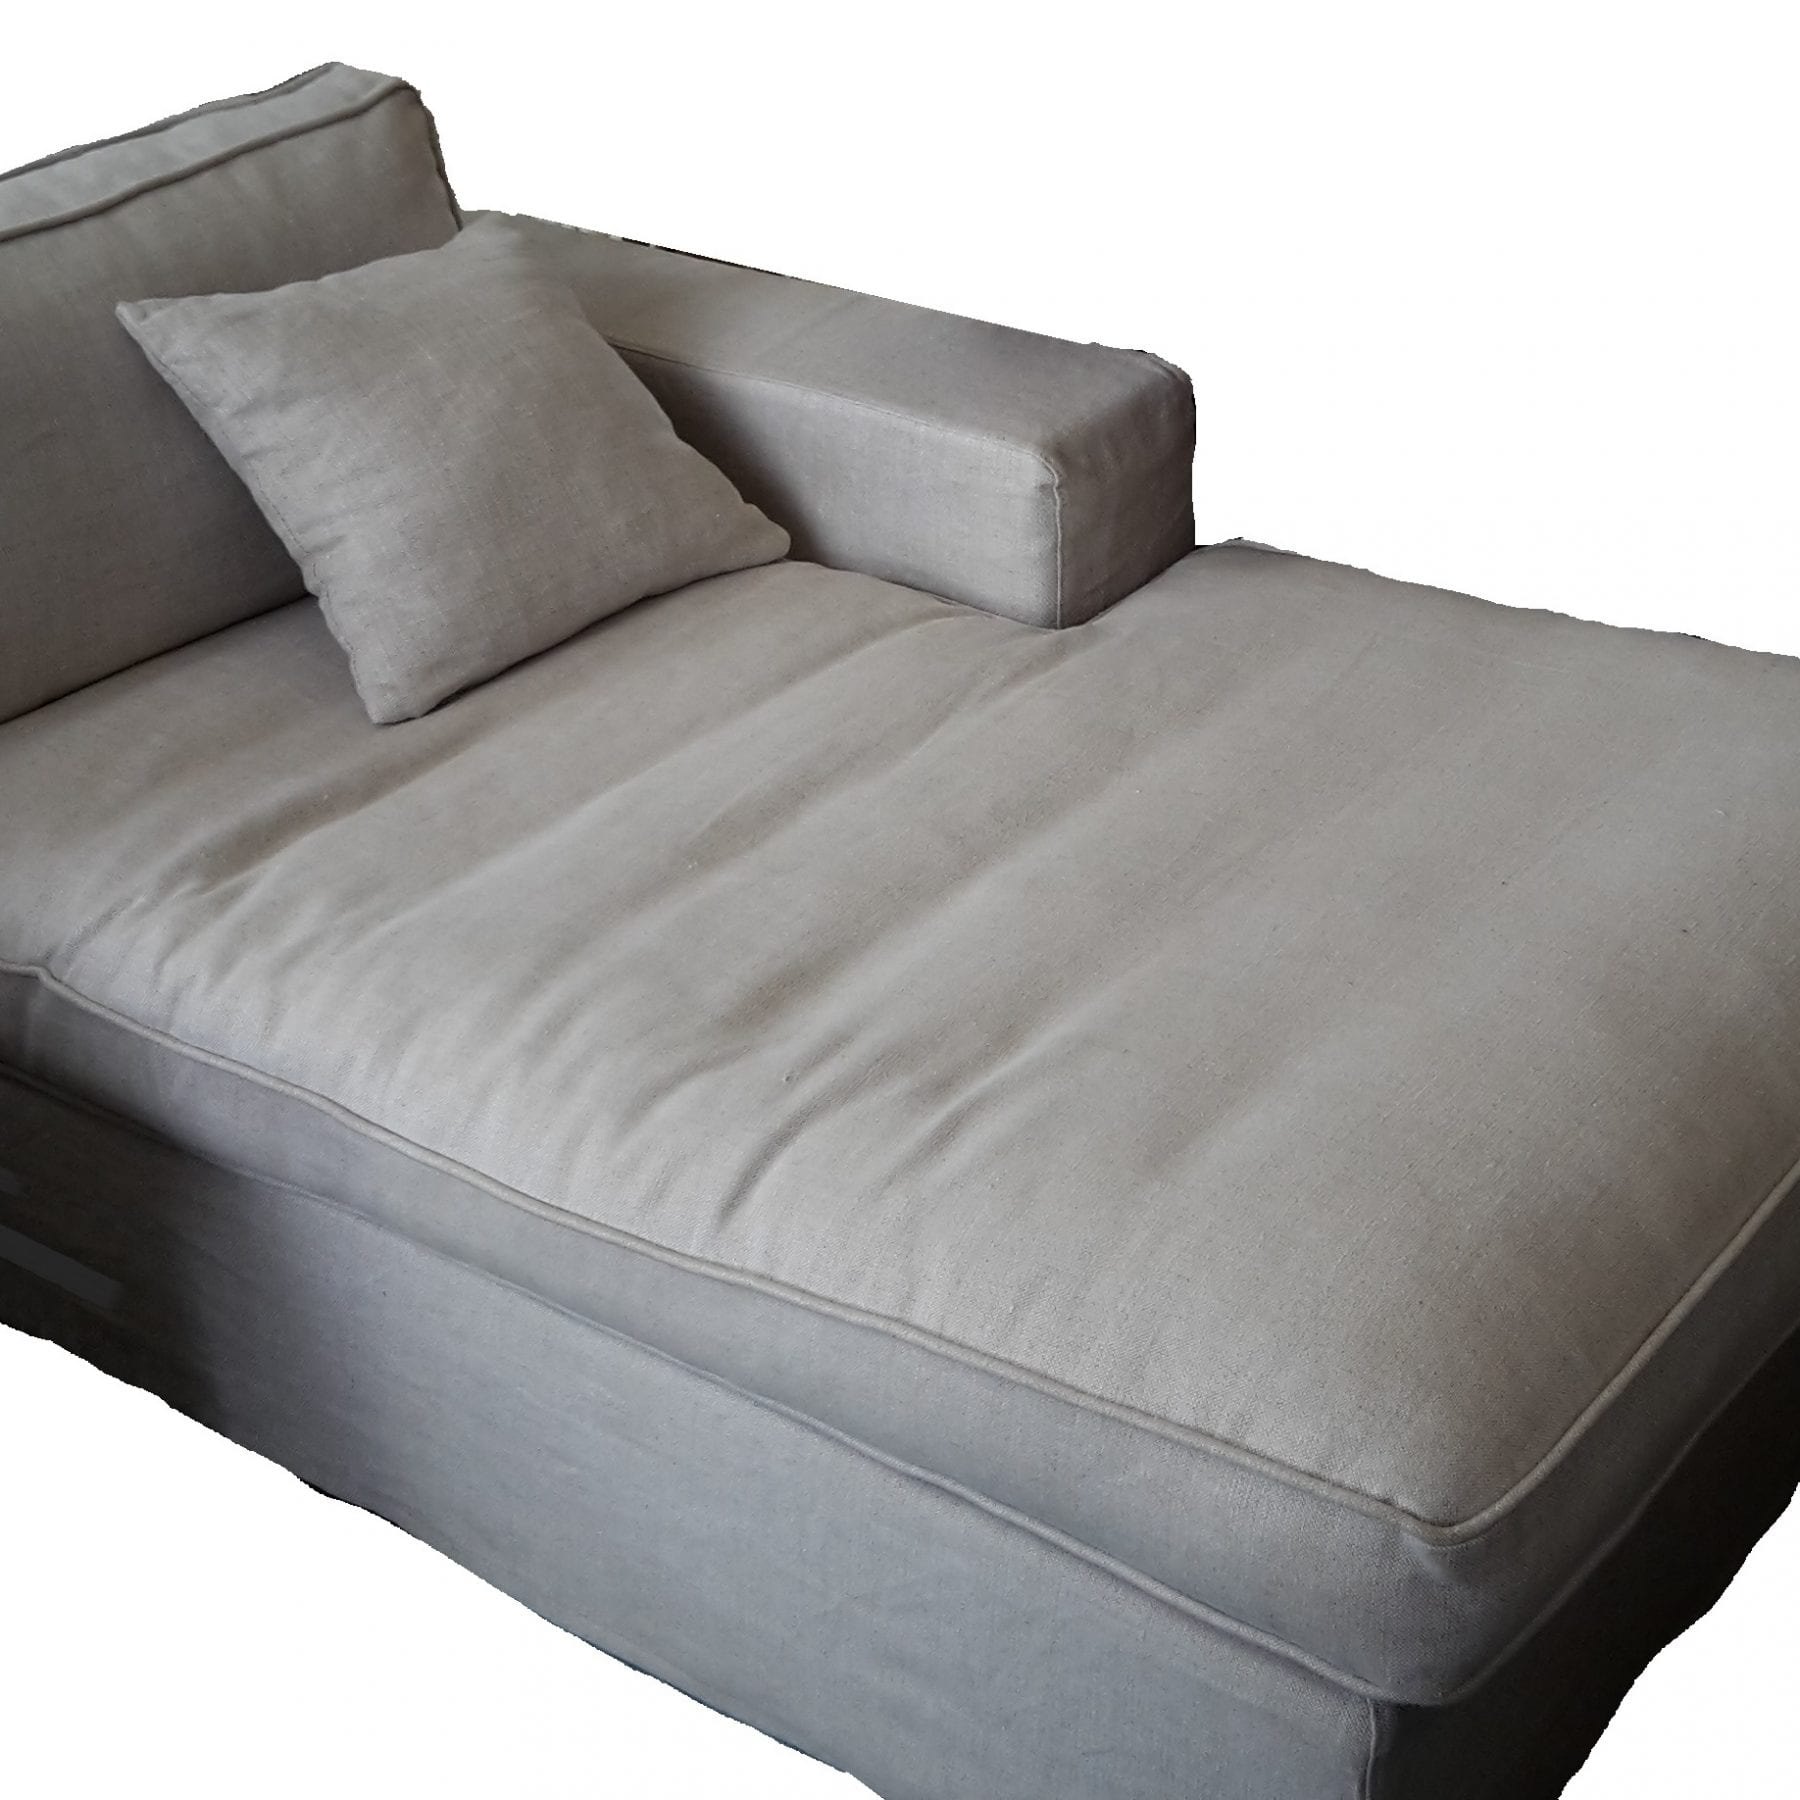 Deville Modular Right or Left Chaise